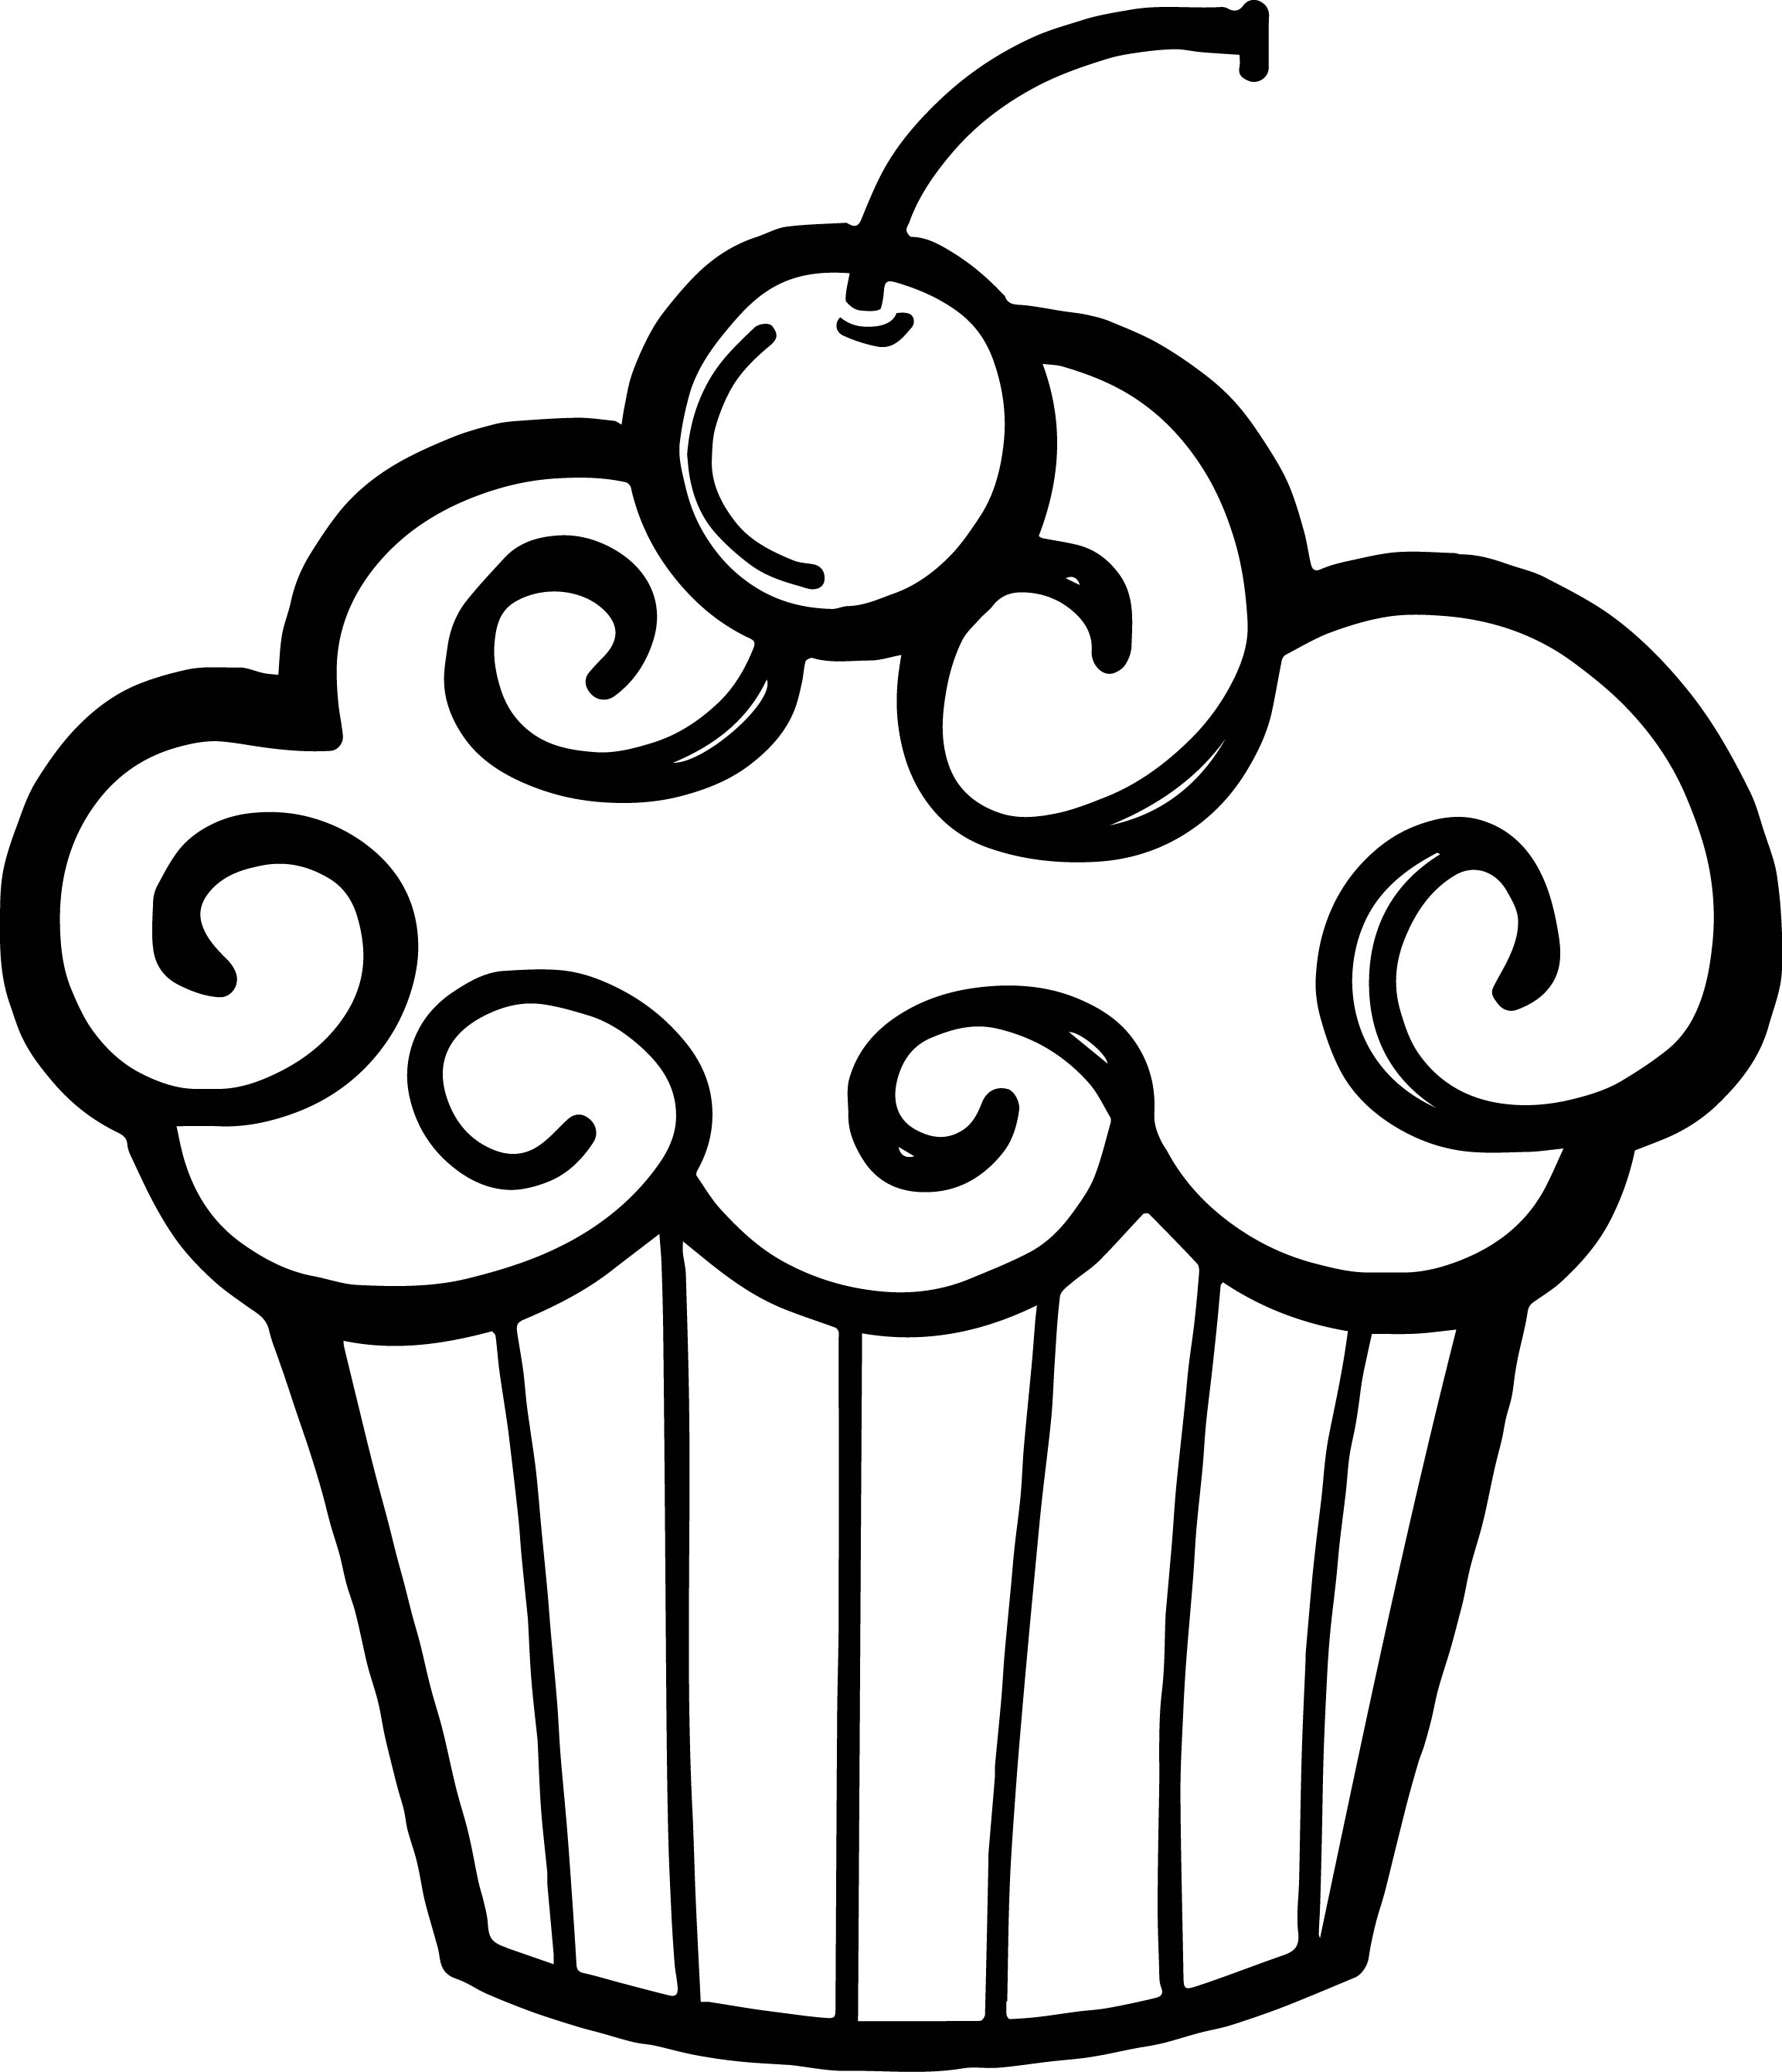 Draw clipart sketch artist. Black and white cupcake